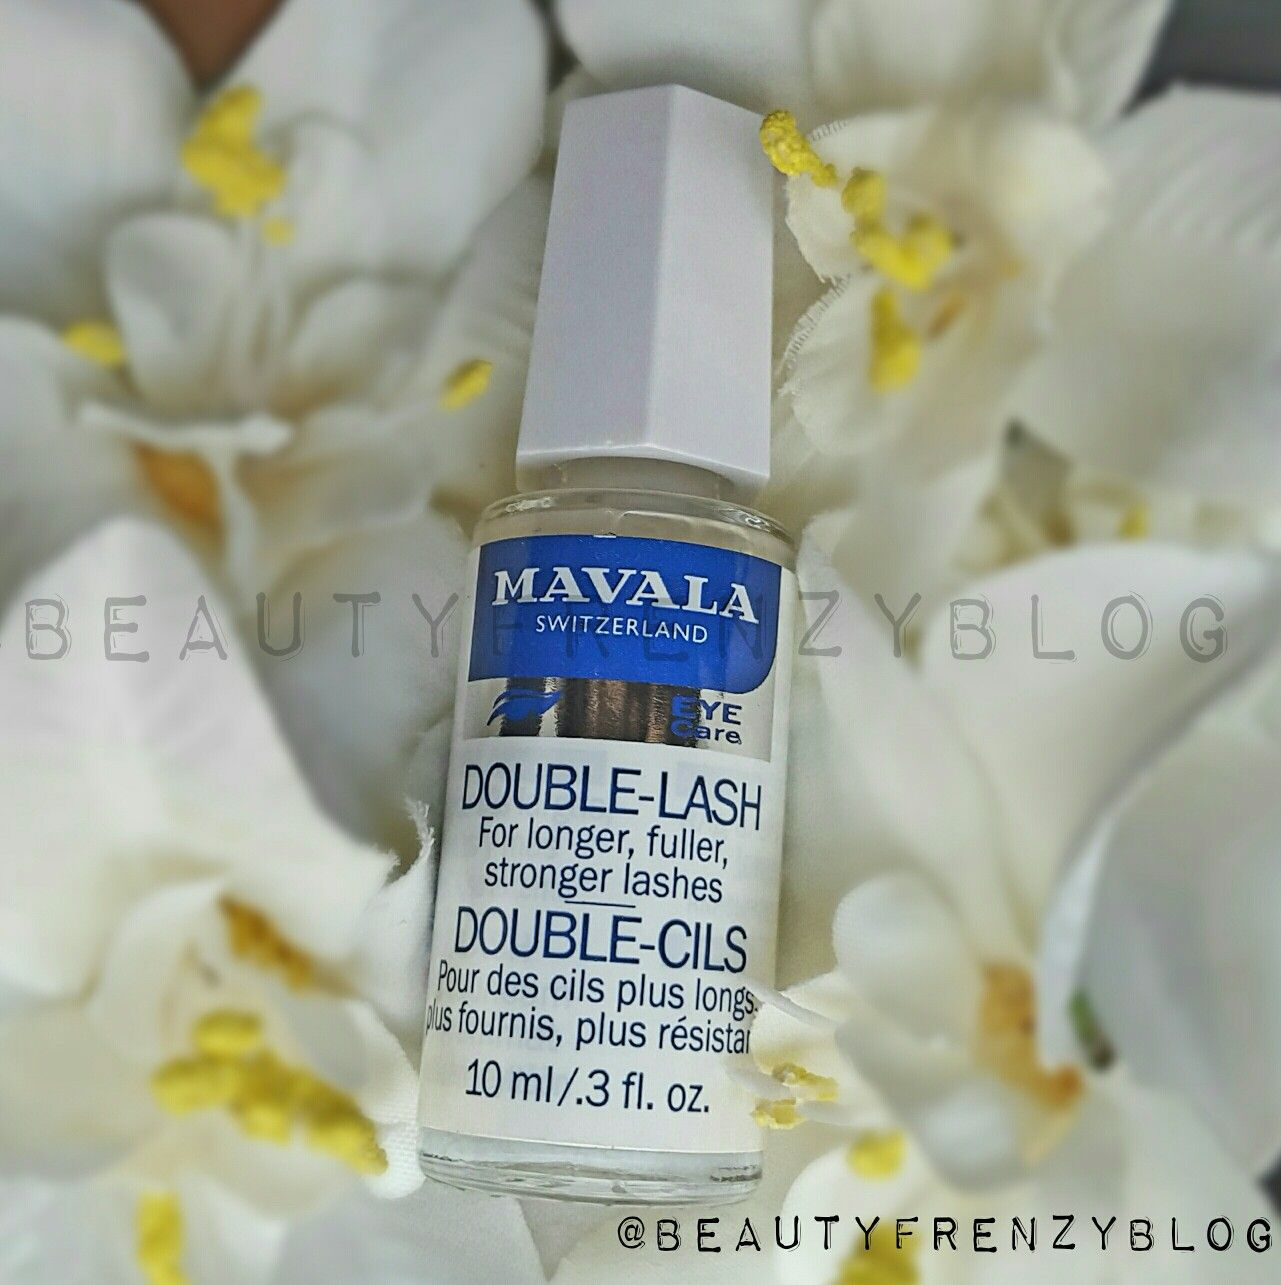 Longer, Fuller, Stronger Lashes. Find out how the Mavala Double Lash Serum can help make your eyelashes longer and fuller. Click here to read more. http://www.beautyfrenzyblog.com/mavala-double-lash-serum-review-longer-lashes-naturally/ #getlongerlashes #growyourlashes #growgullereyelashes #mavaladoublelashserumreview